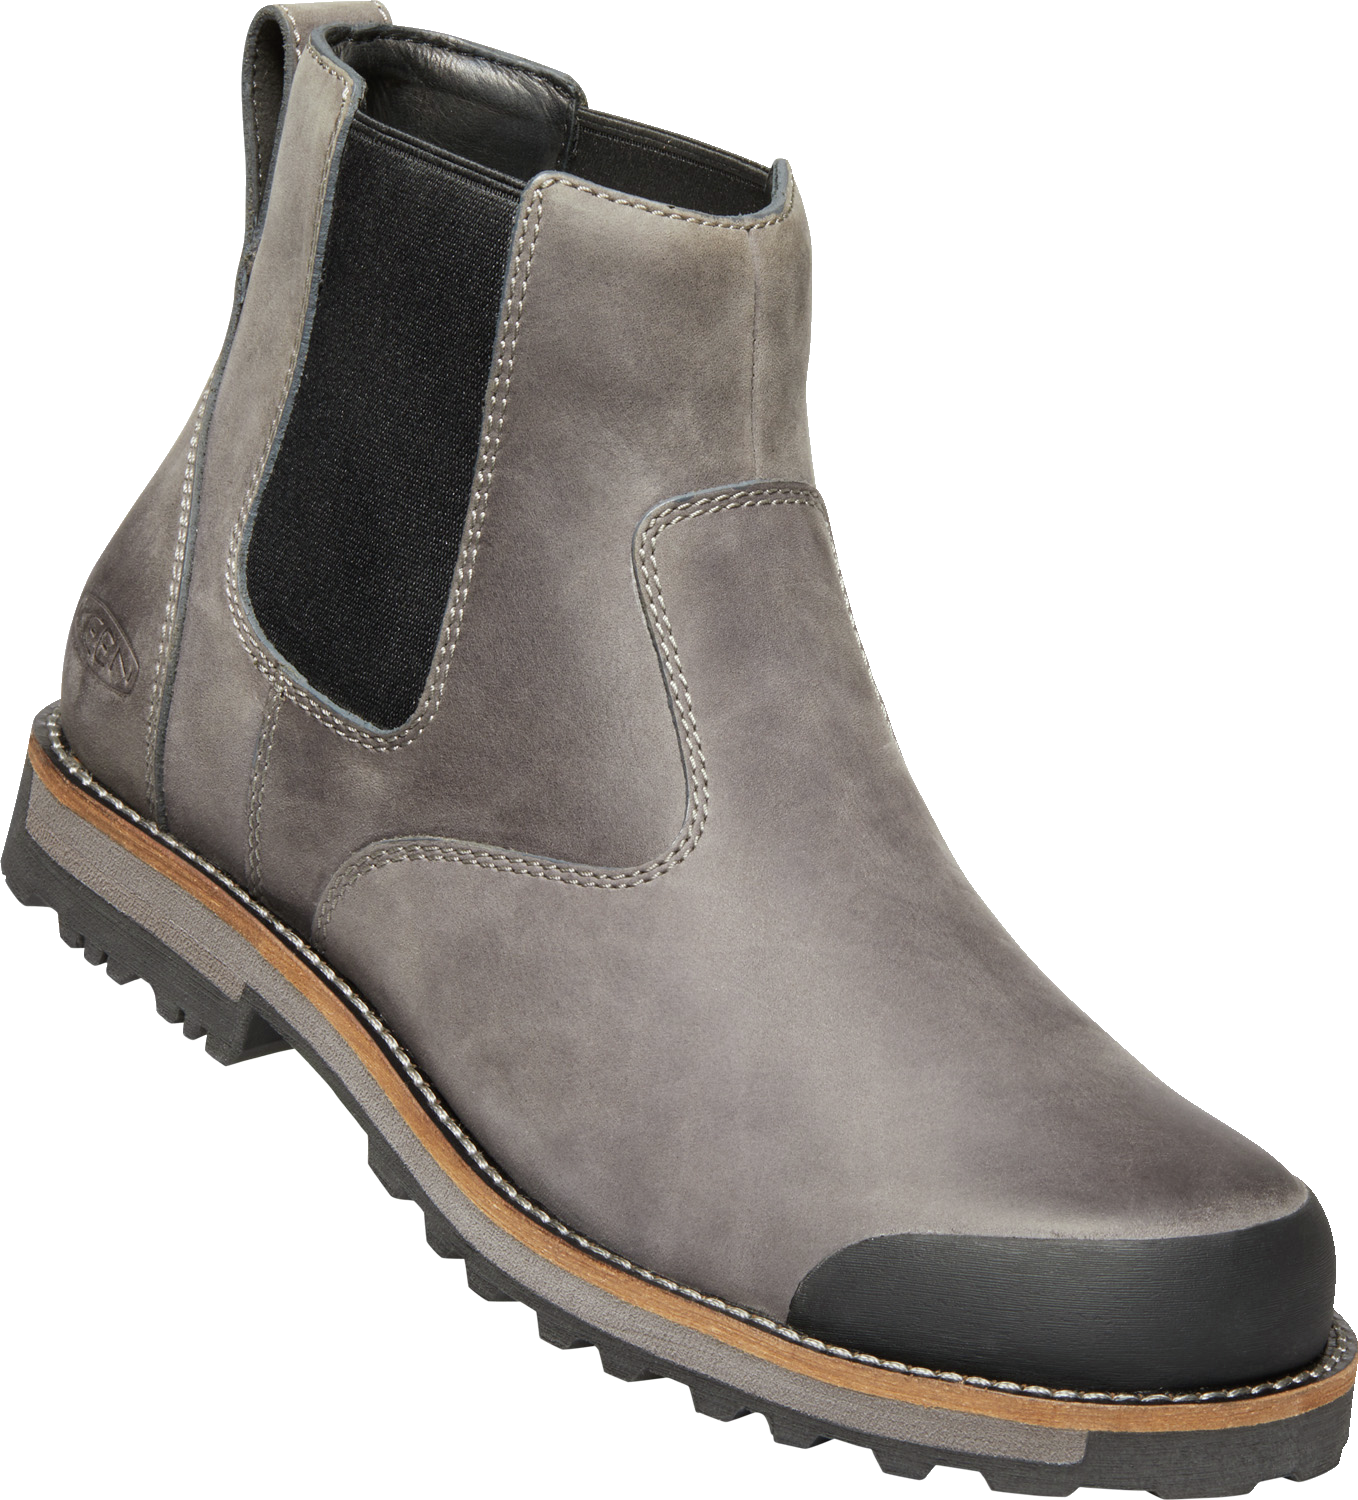 KEEN MENS THE 59 II CHELSEA MAGNET BOOT